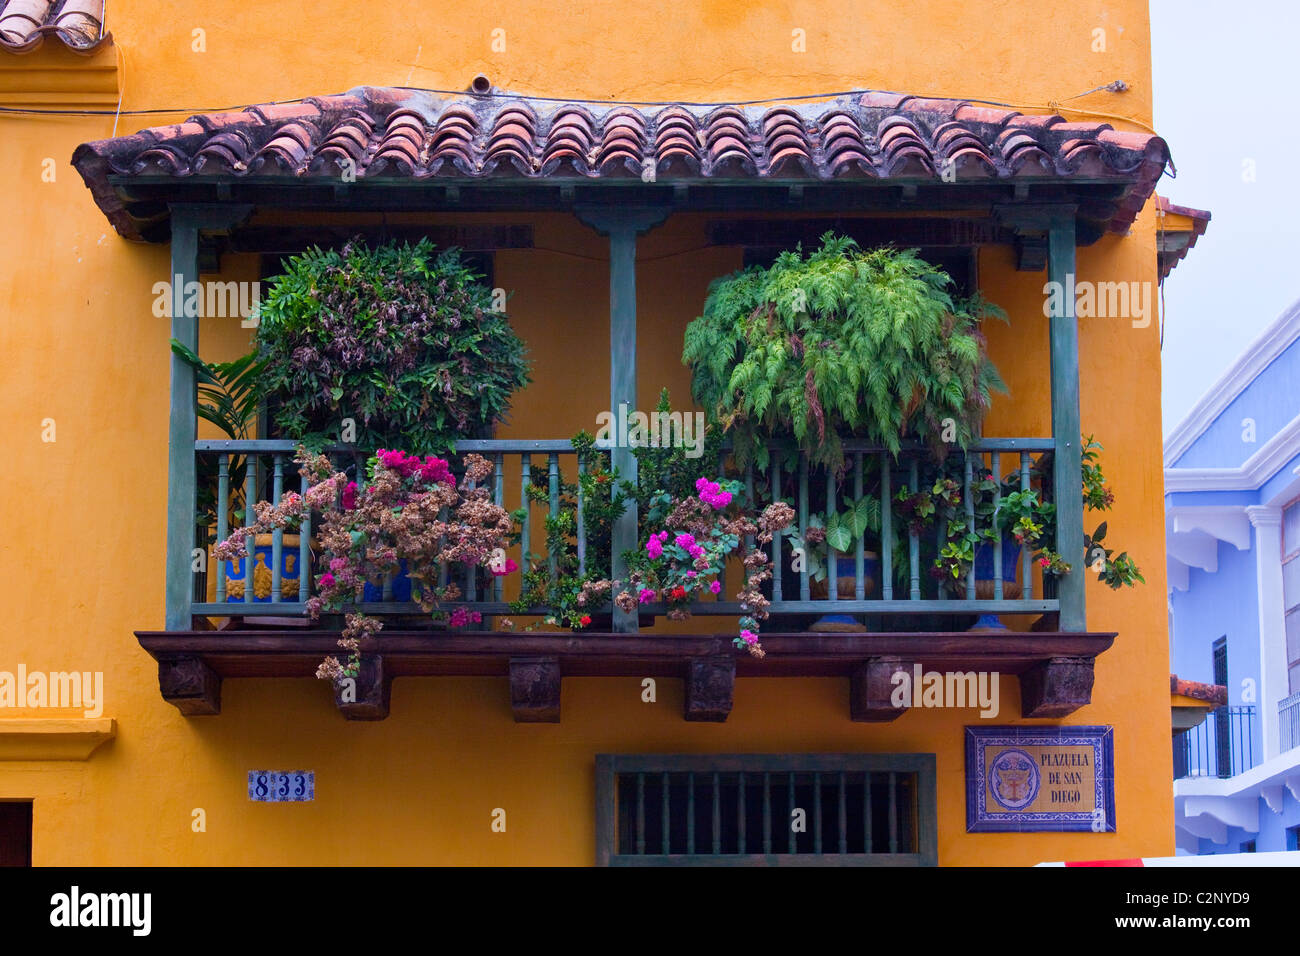 Balcony in the old town, Cartagena, Colombia - Stock Image